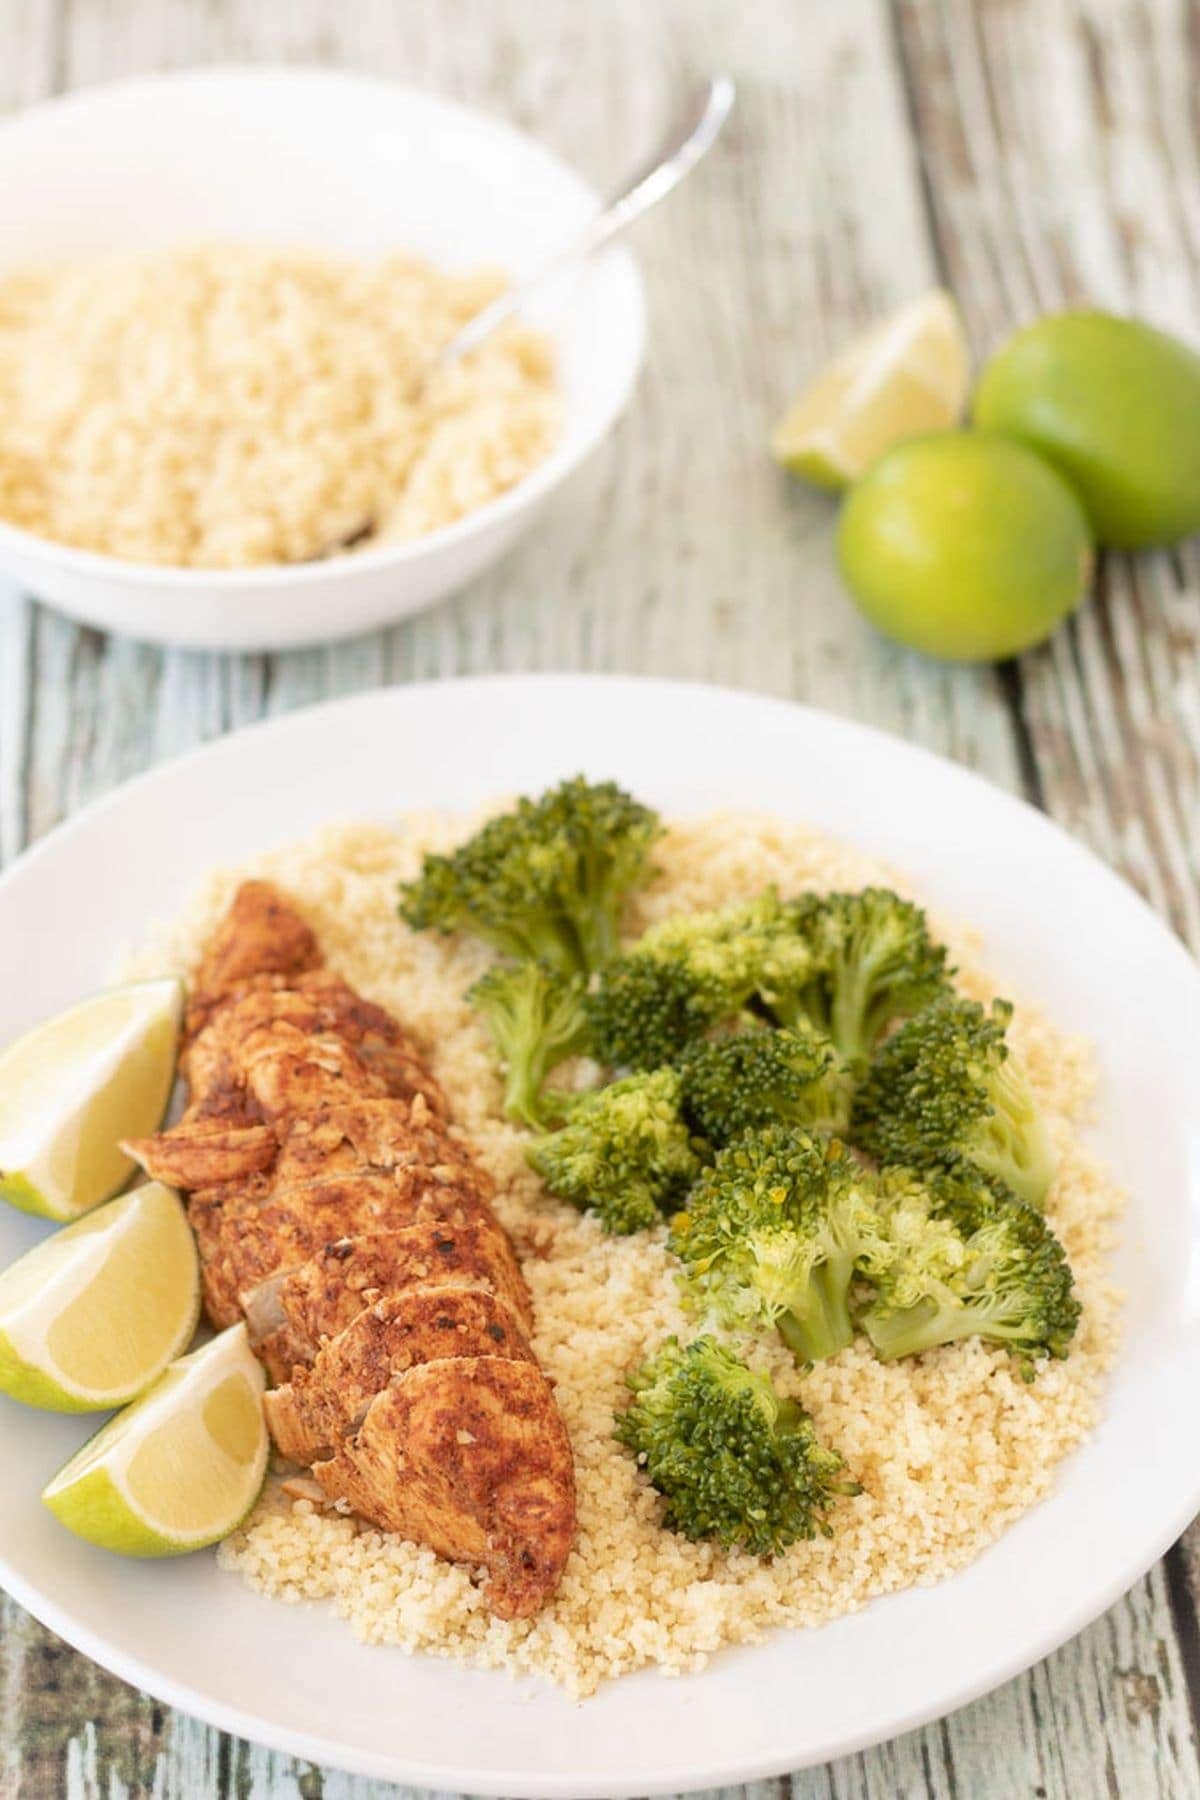 A plate with oven baked lime chicken served on a bed of rice and broccoli with lime wedges beside. A bowl of rice and two and a half limes in the background.